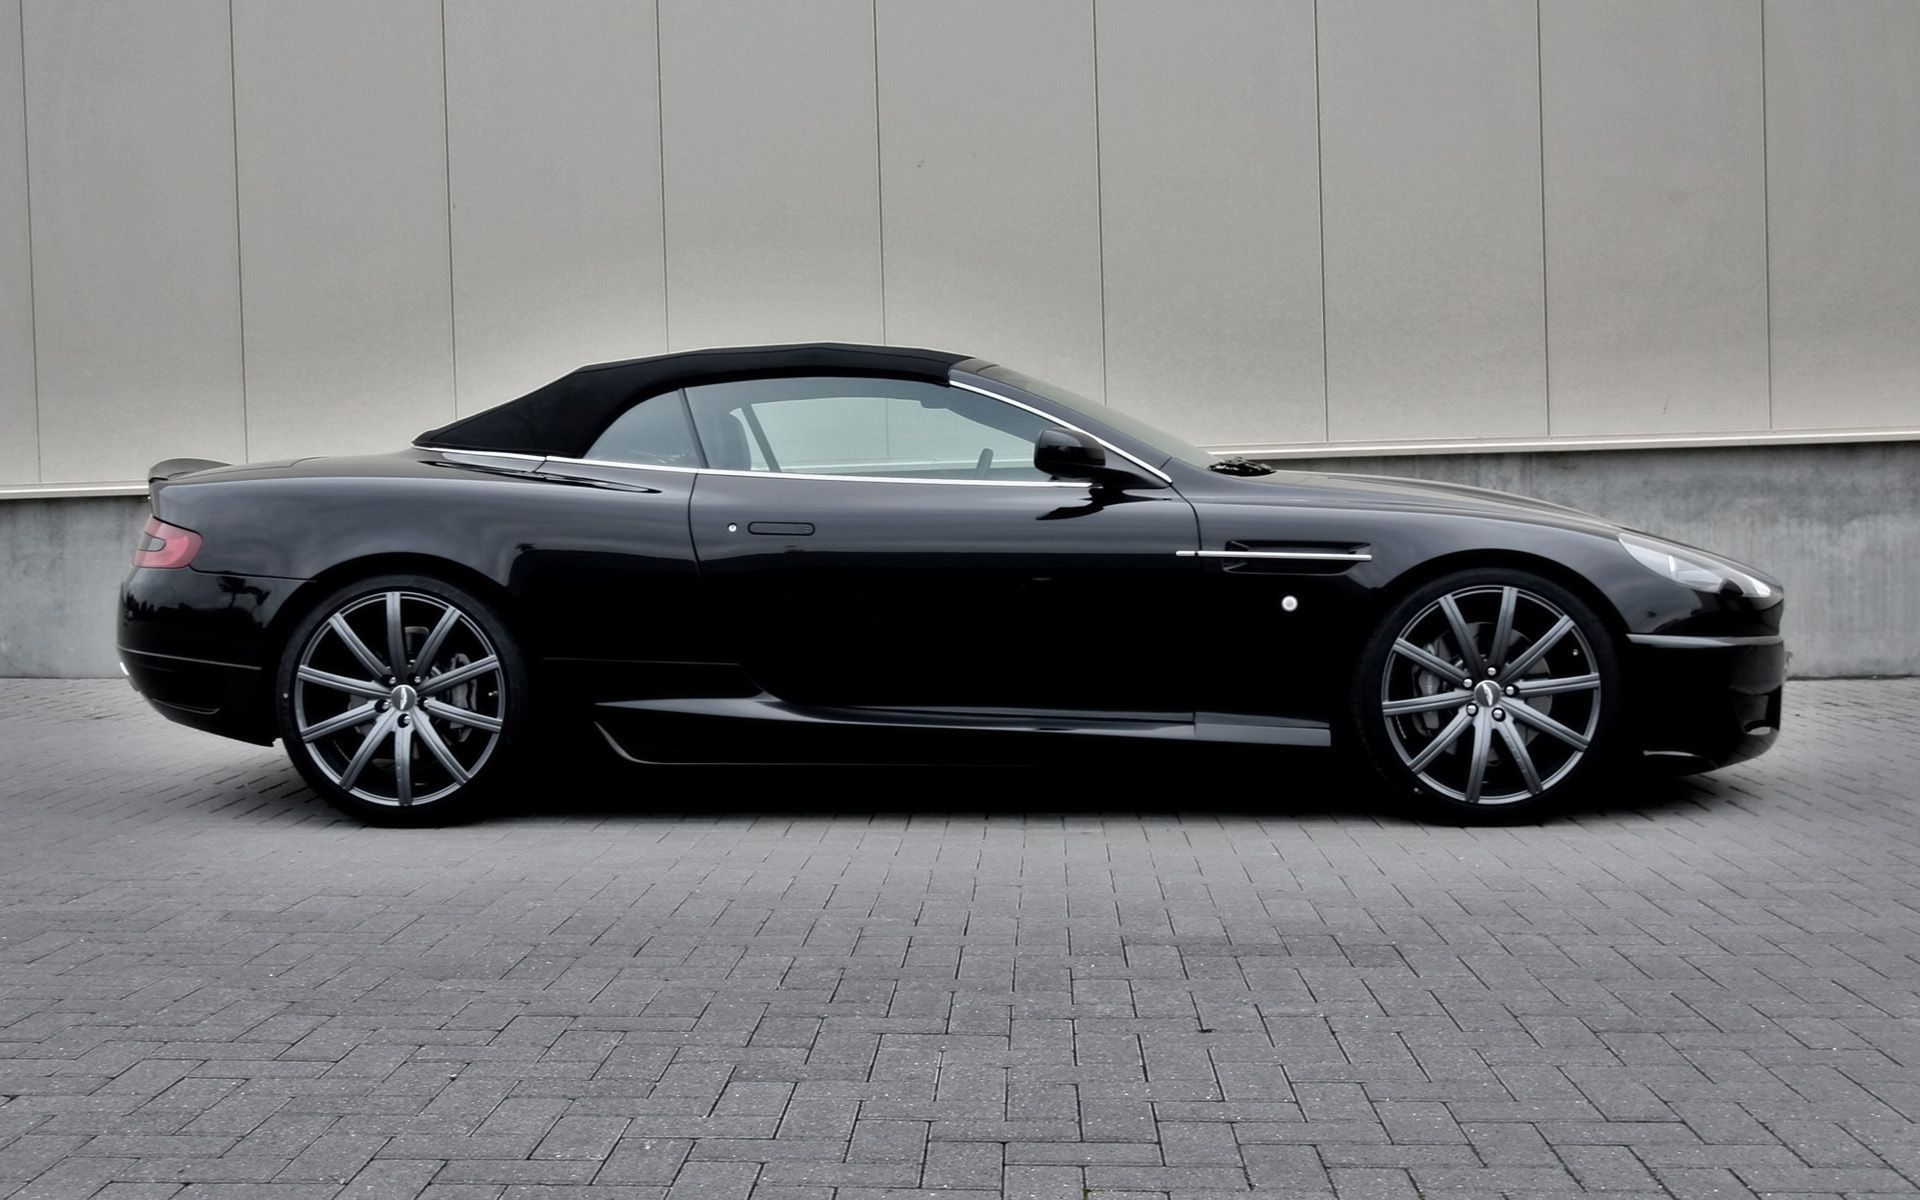 Aston Martin Db9 Tumblr